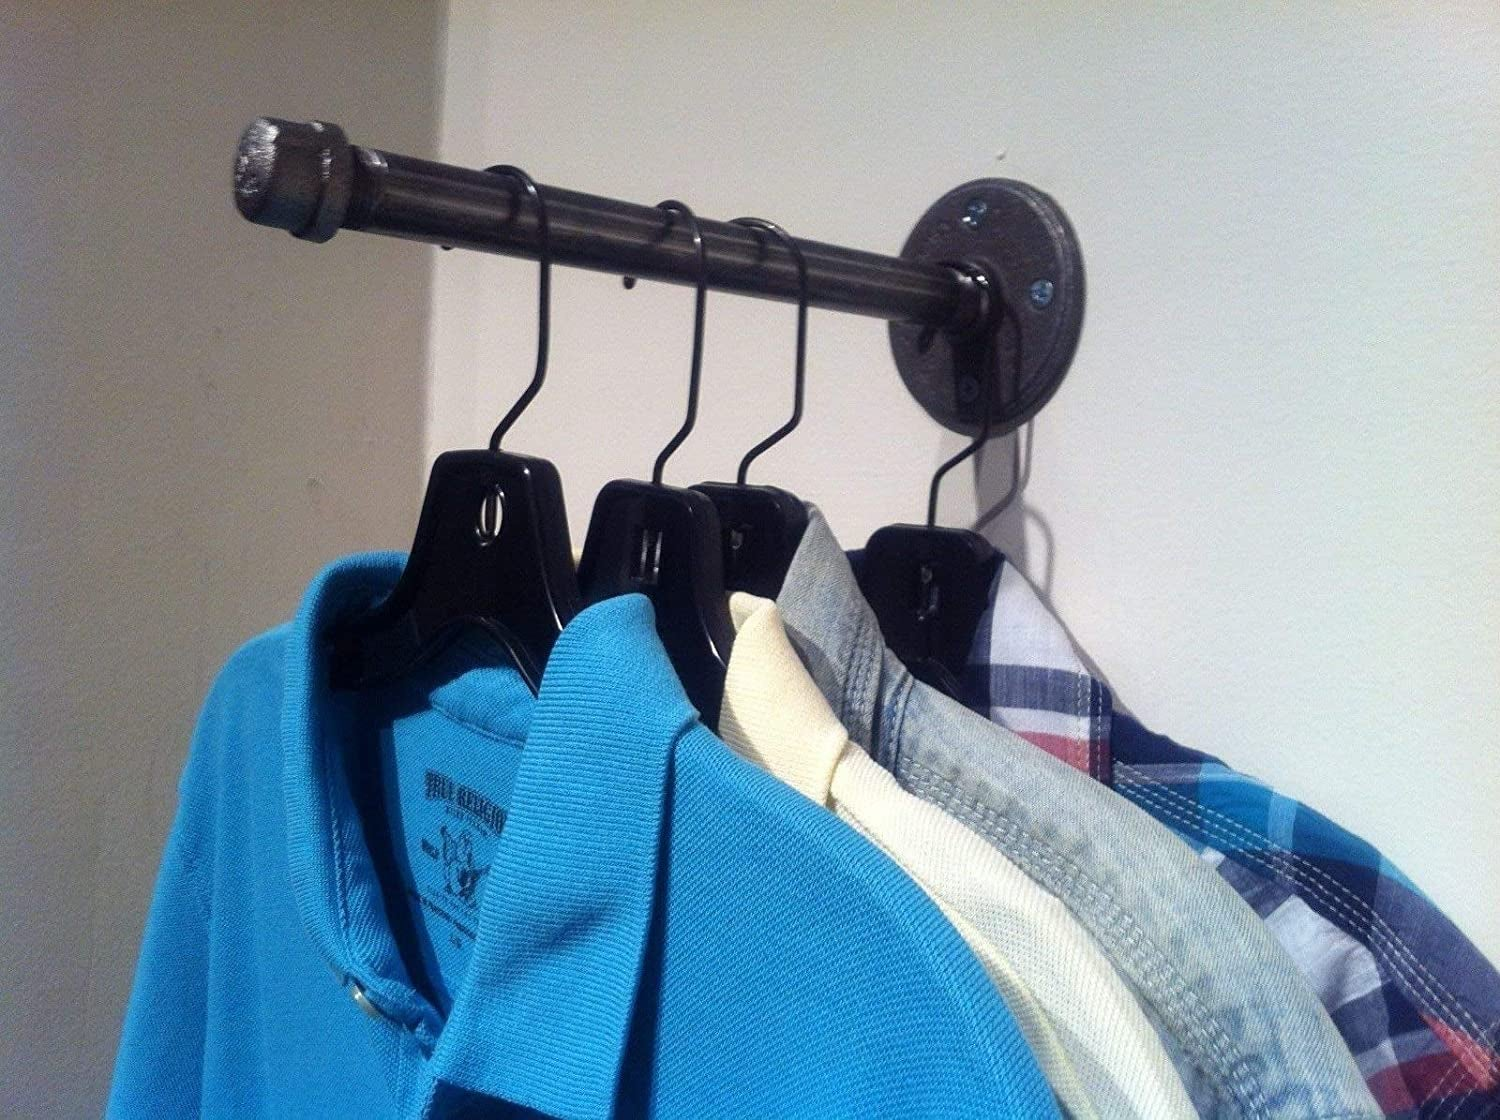 wall mounted rod with several shirts on a hanger on it